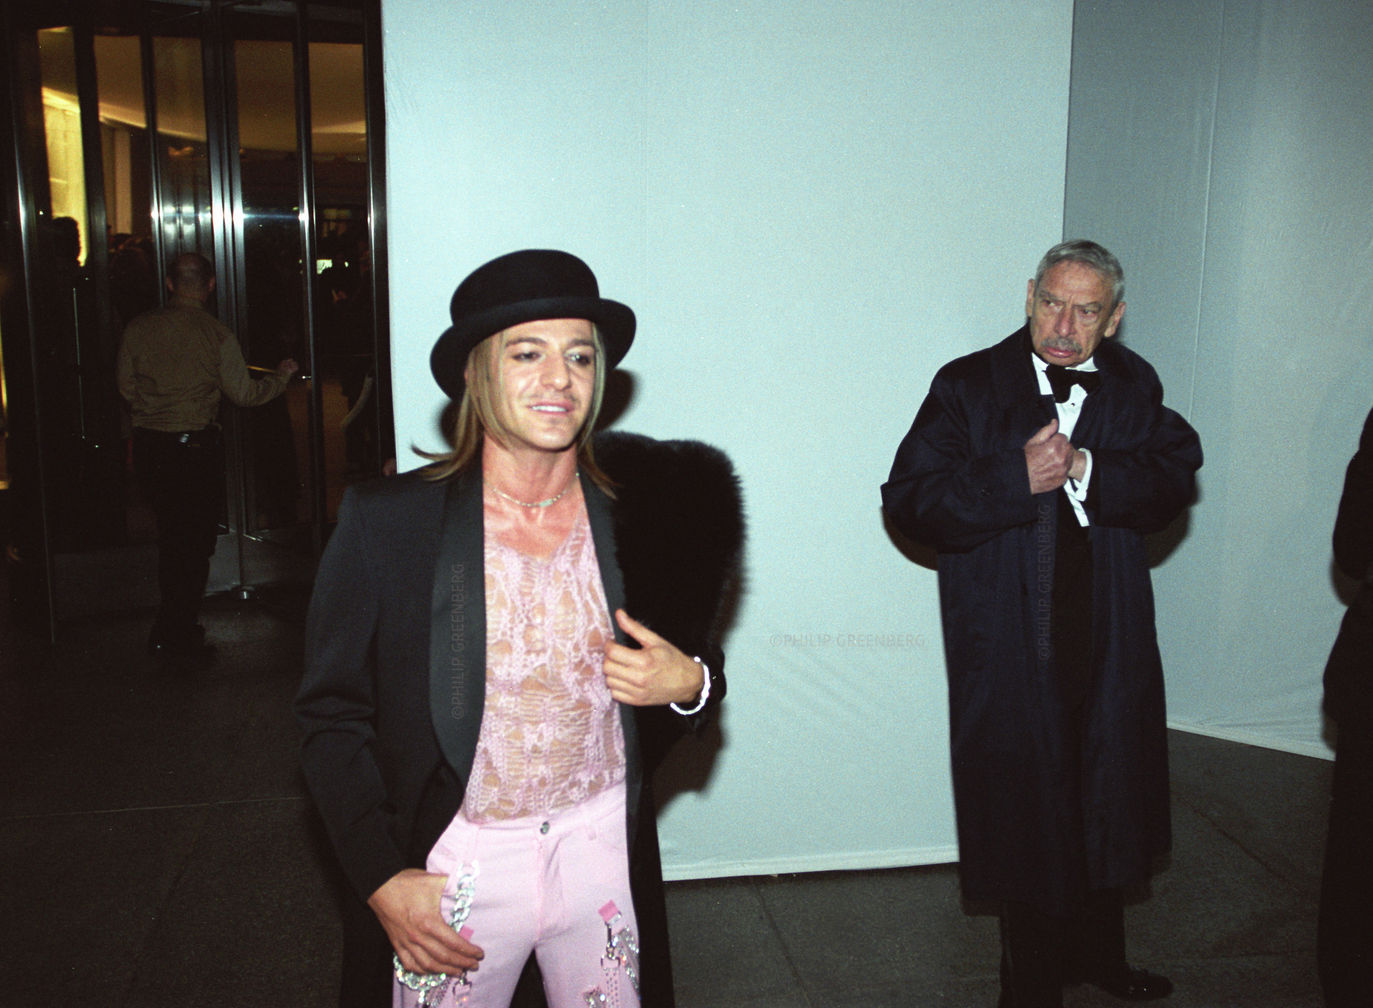 John Galliano for The New York Times